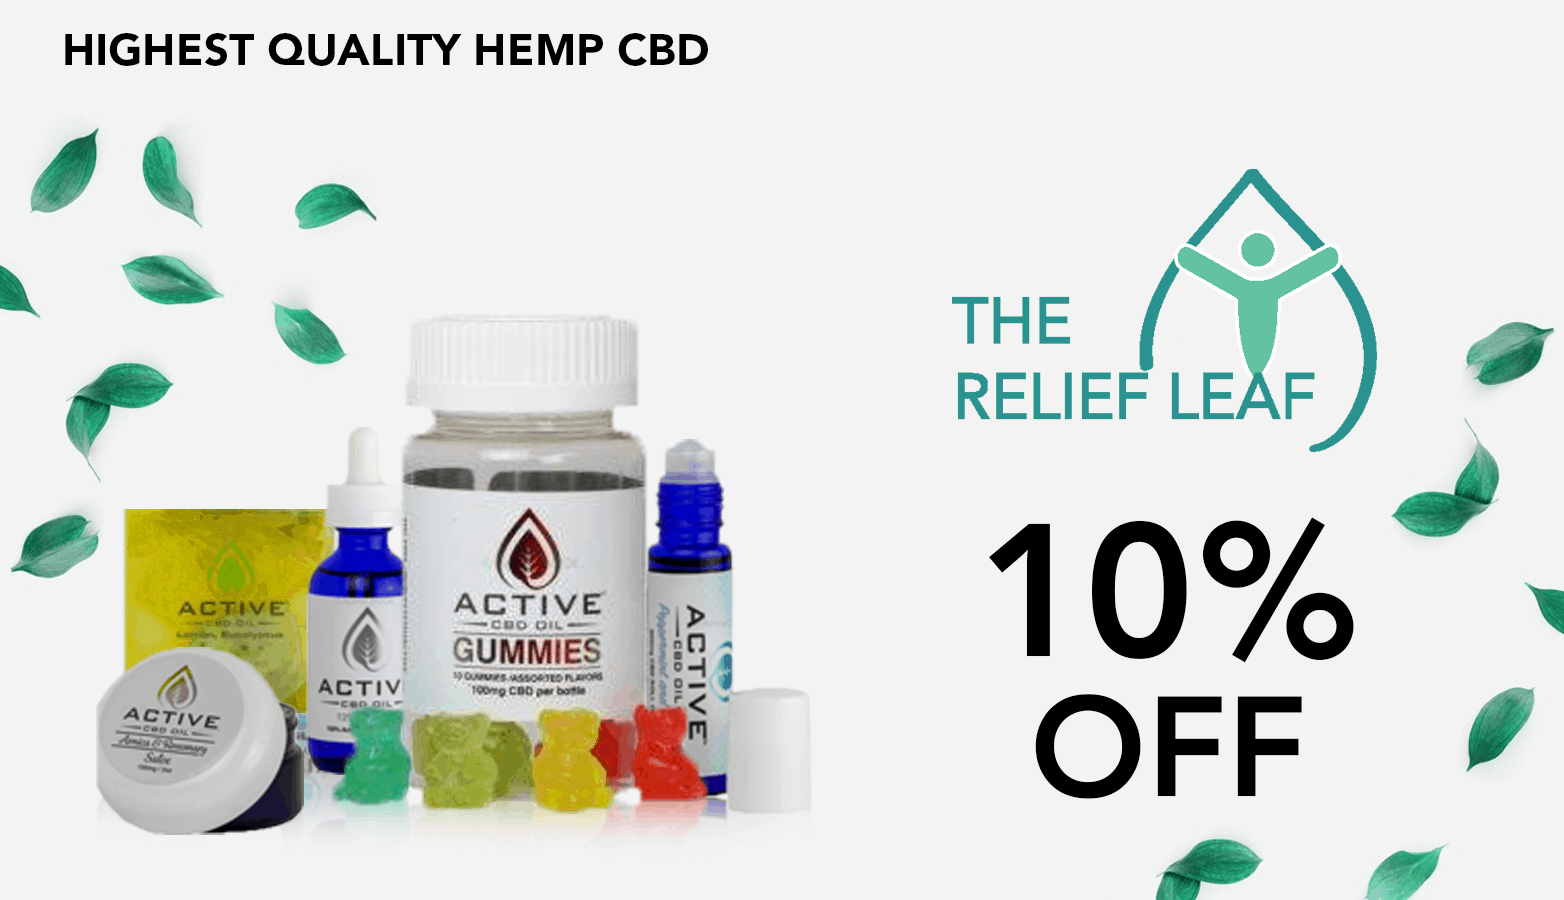 The Relief Leaf CBD Coupon Code discounts promos save on cannabis online Website Redesign